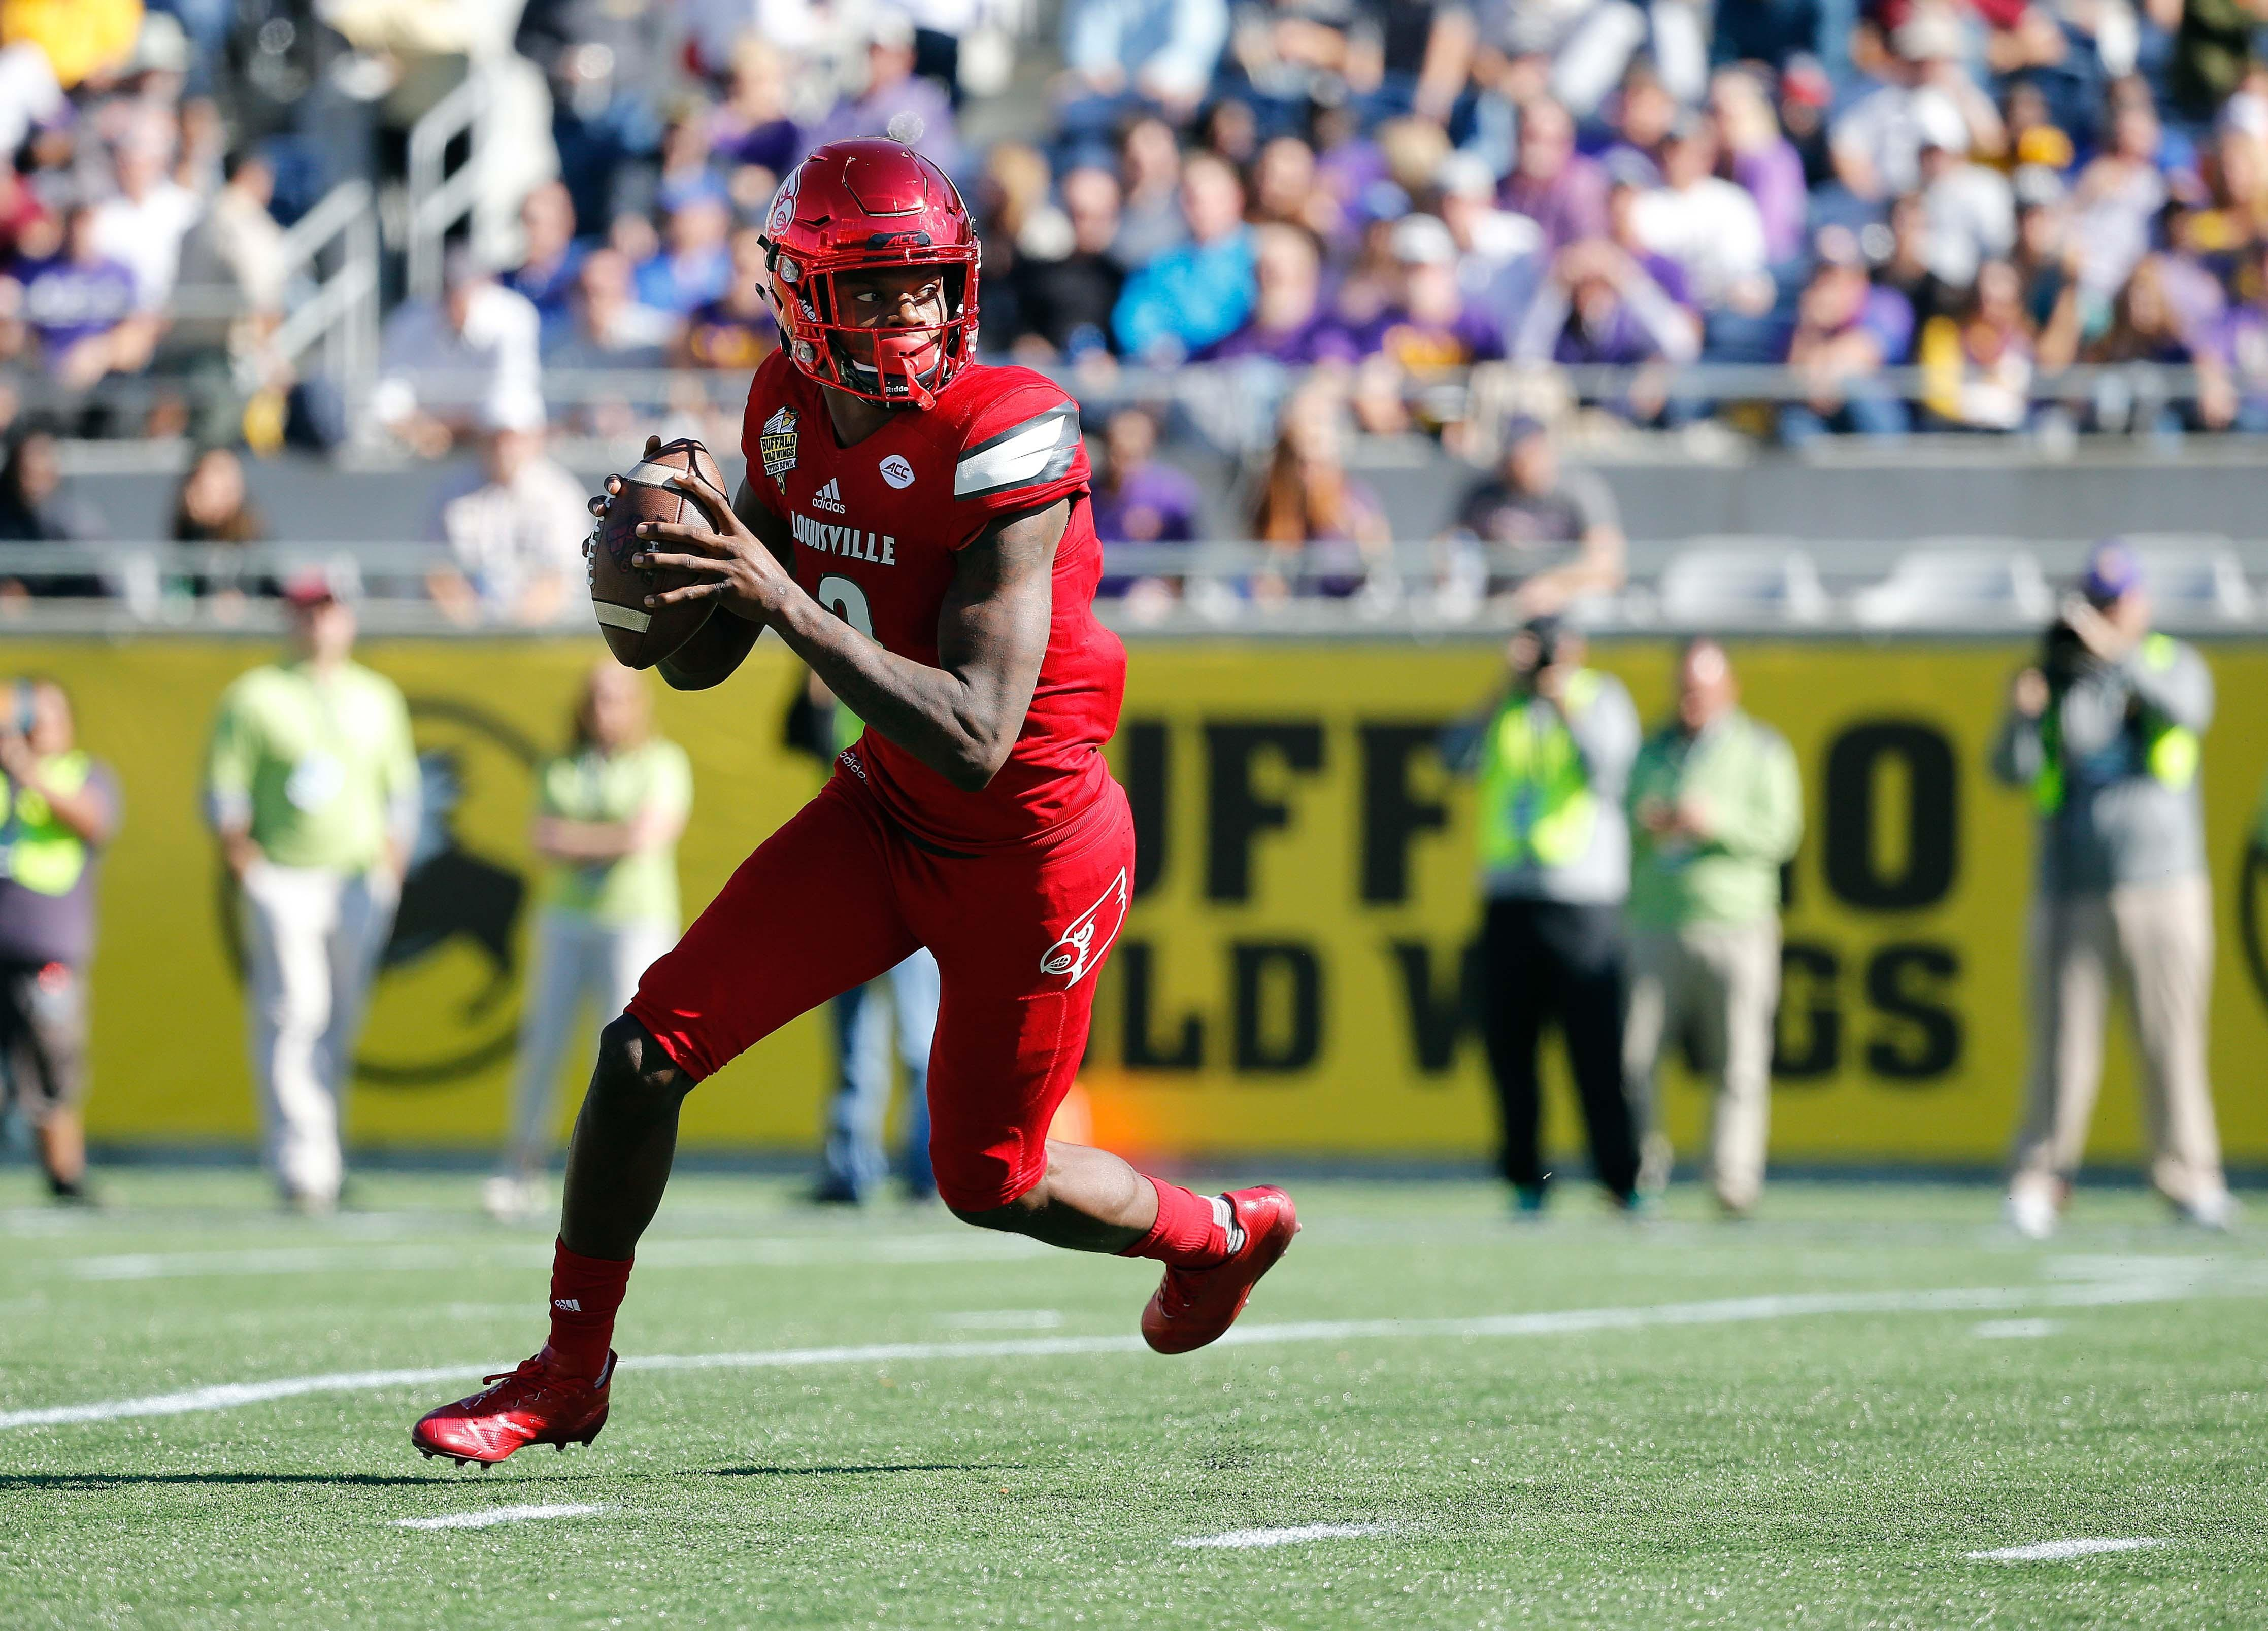 d7f8ecef6 What should fans expect from reigning Heisman winner Lamar Jackson in 2017